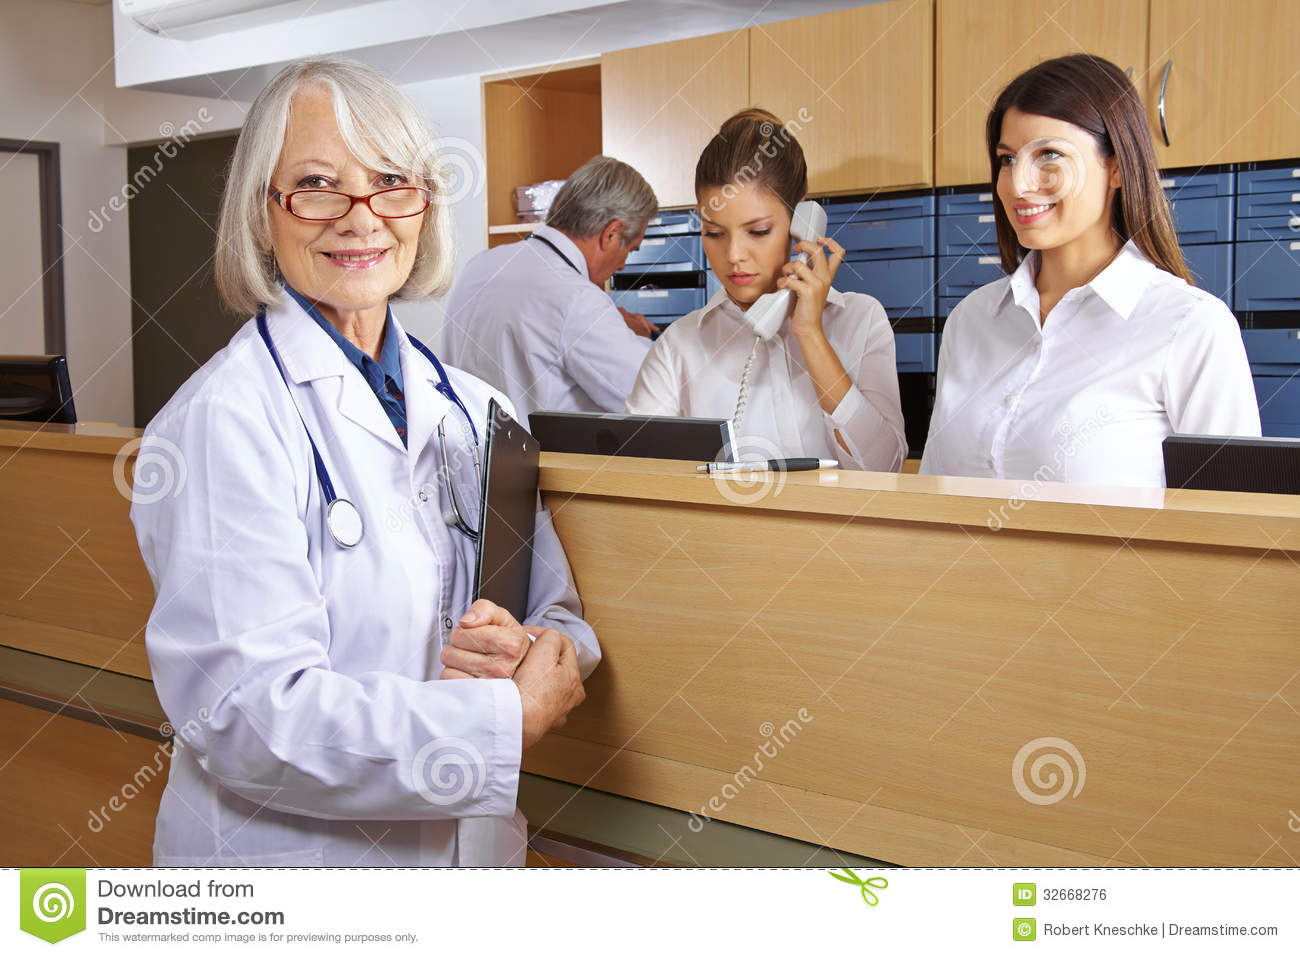 Hospital Receptionist Hospital Receptionist Doctor and receptionist in hospital